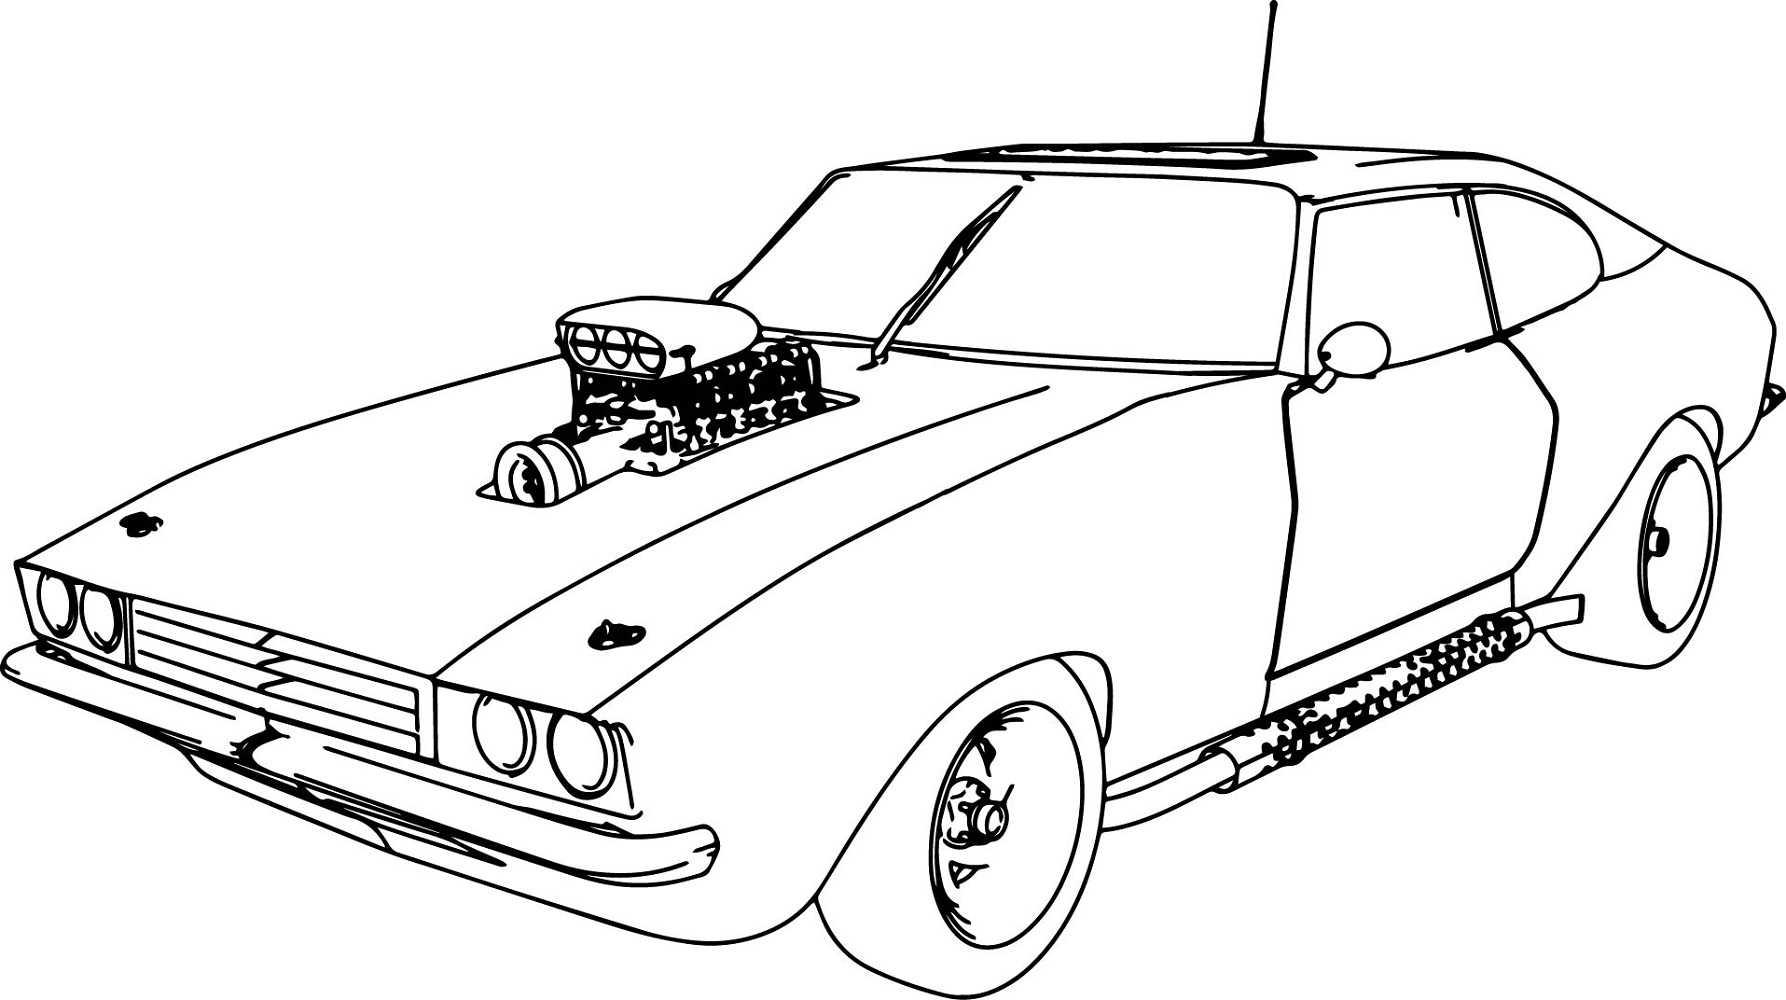 fast-and-furious-coloring-pages-muscle-car.